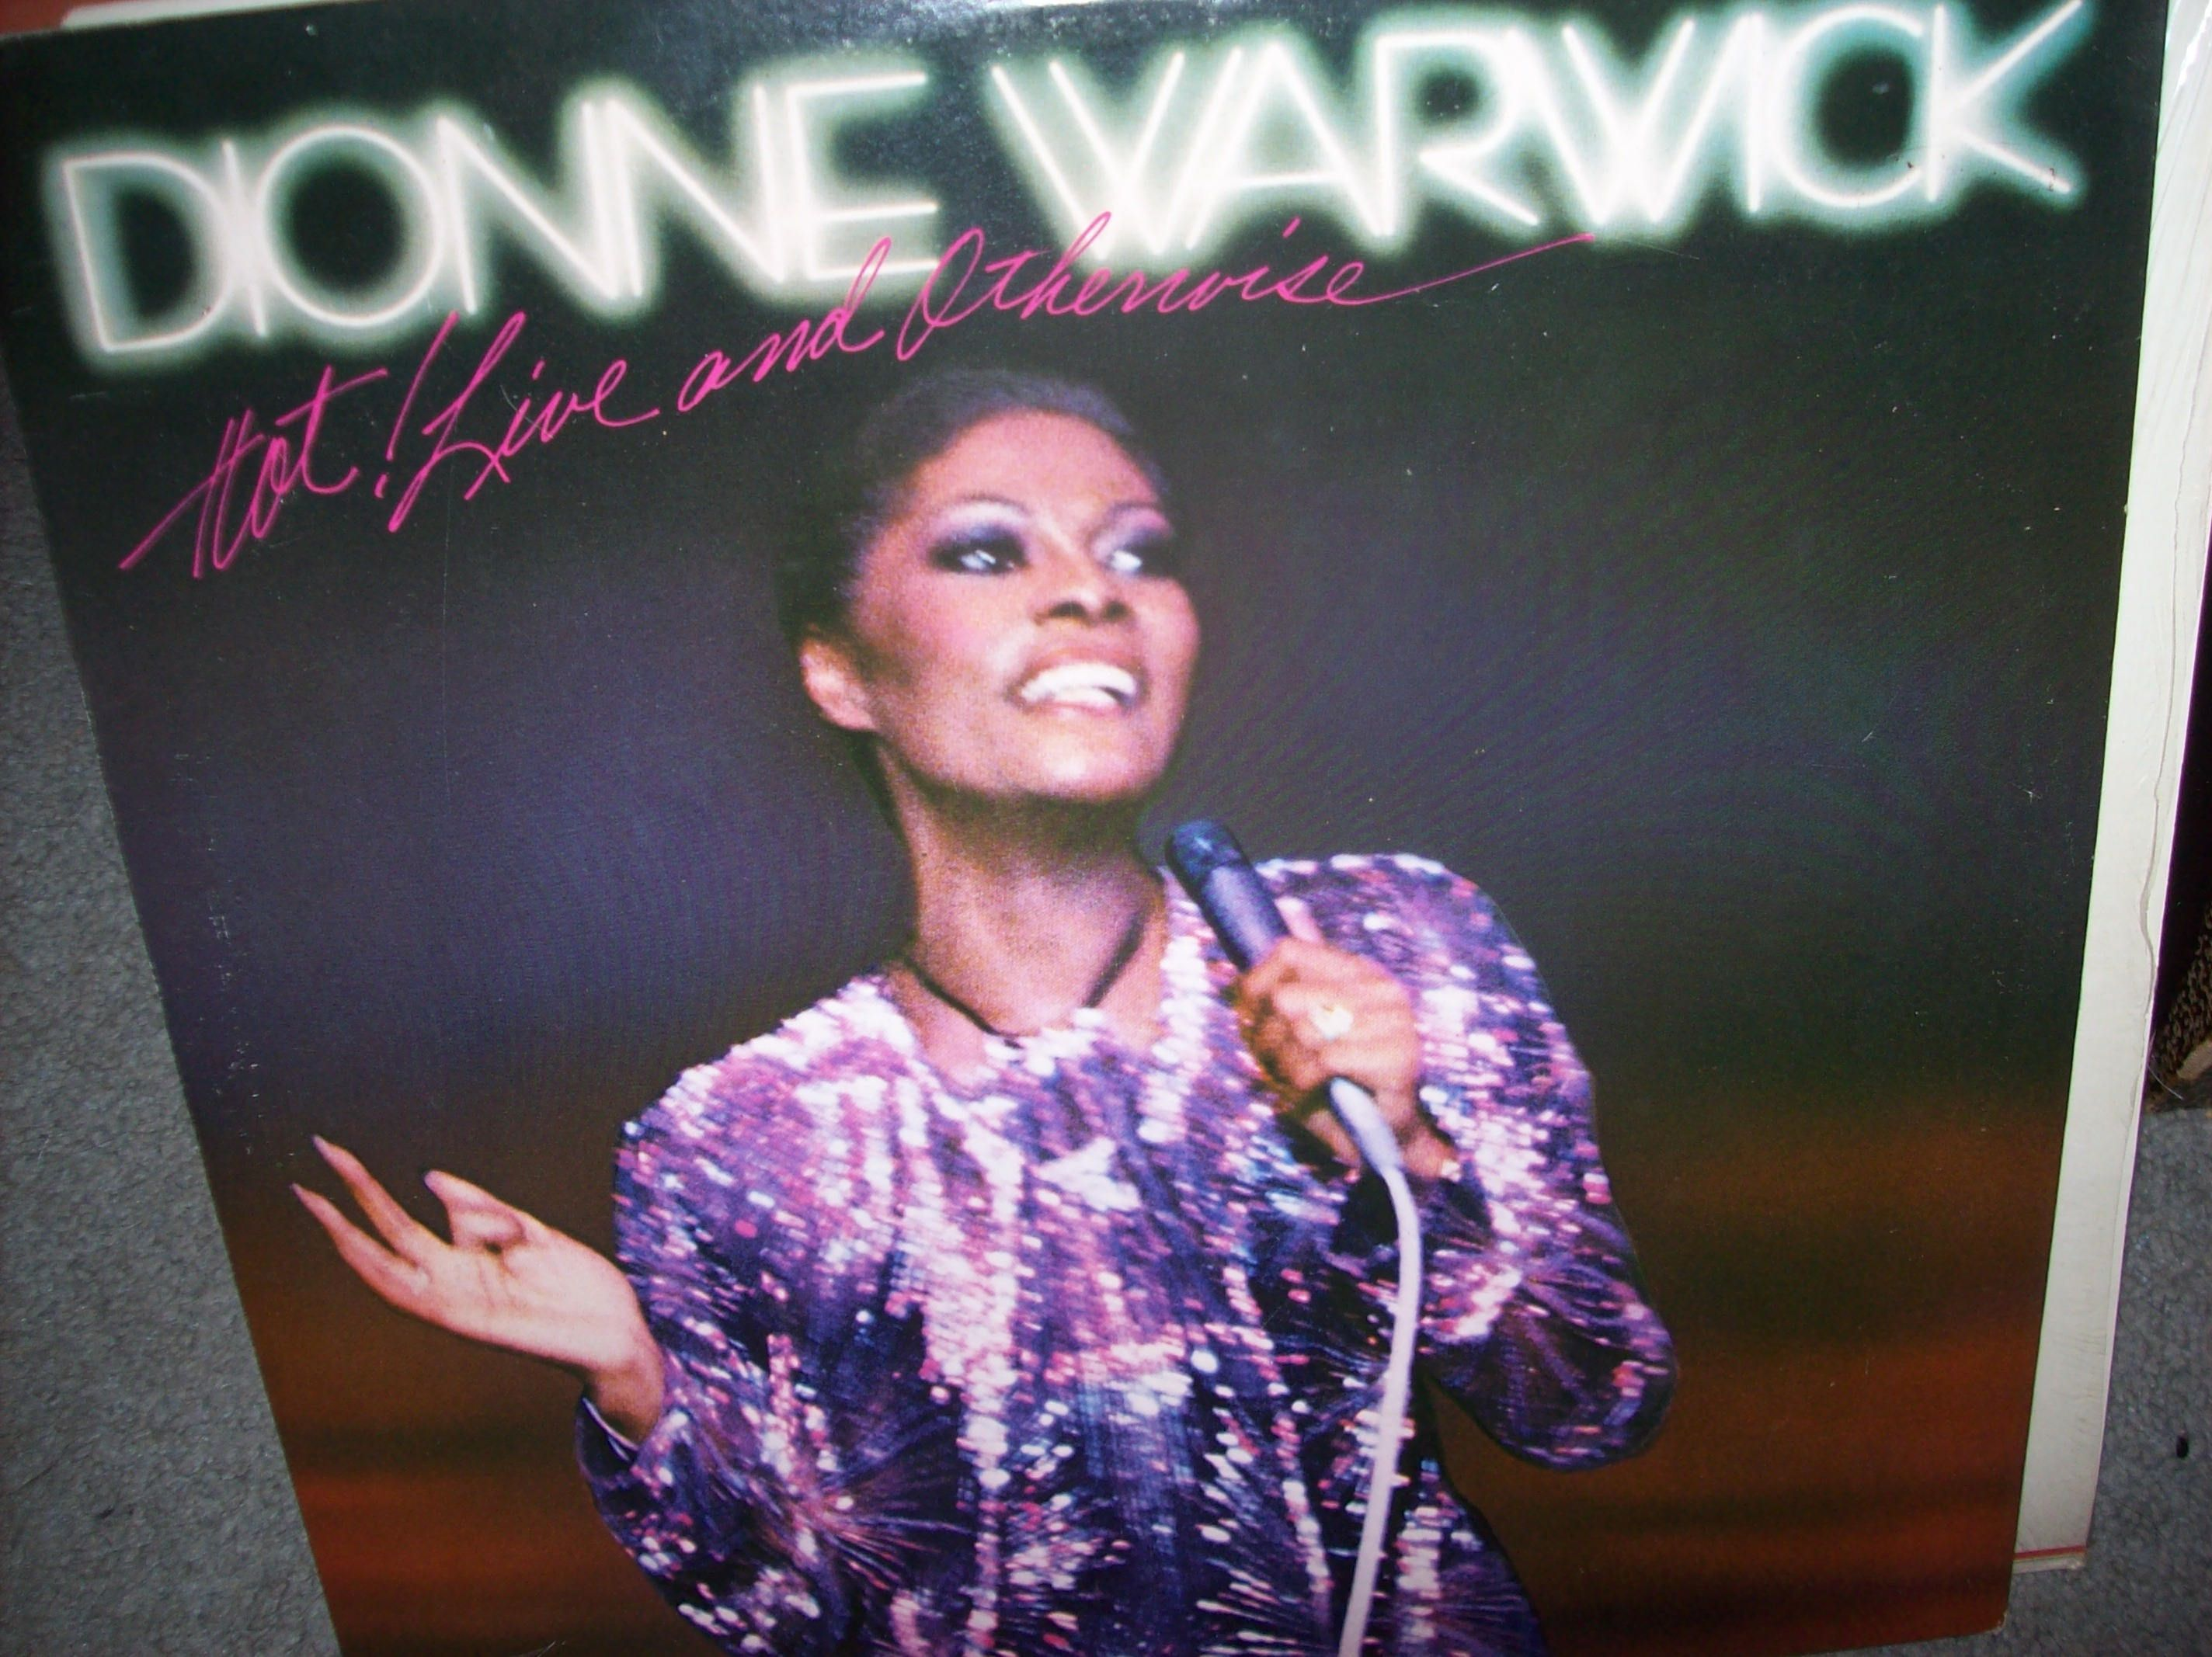 Dionne Warwick Hot Live And Otherwise Lp Album 2 X Records 1981 Vinyl Rhythm Blues By Kd15 On Etsy Dionne Warwick Rhythm And Blues Lp Albums